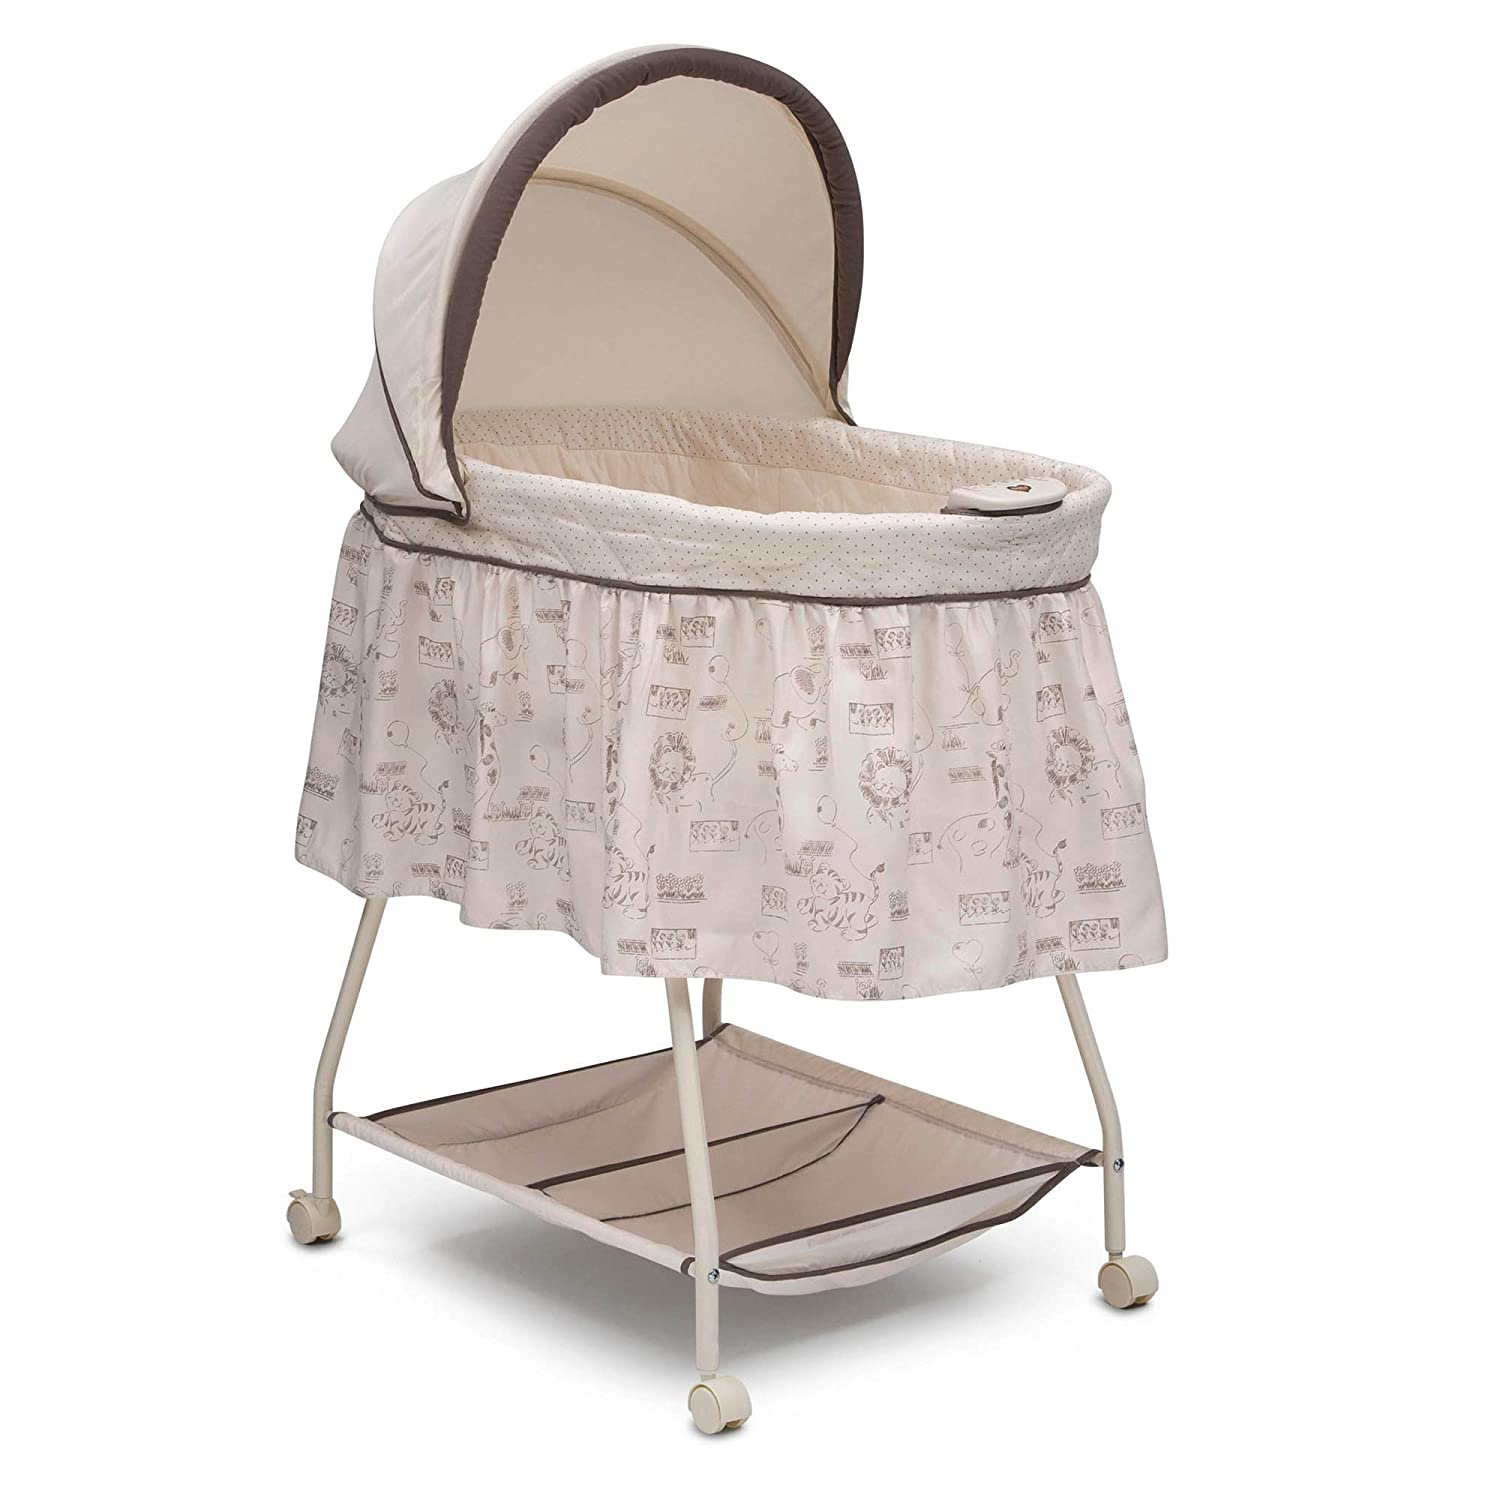 Delta Children Deluxe Sweet Beginnings Bassinet For Baby